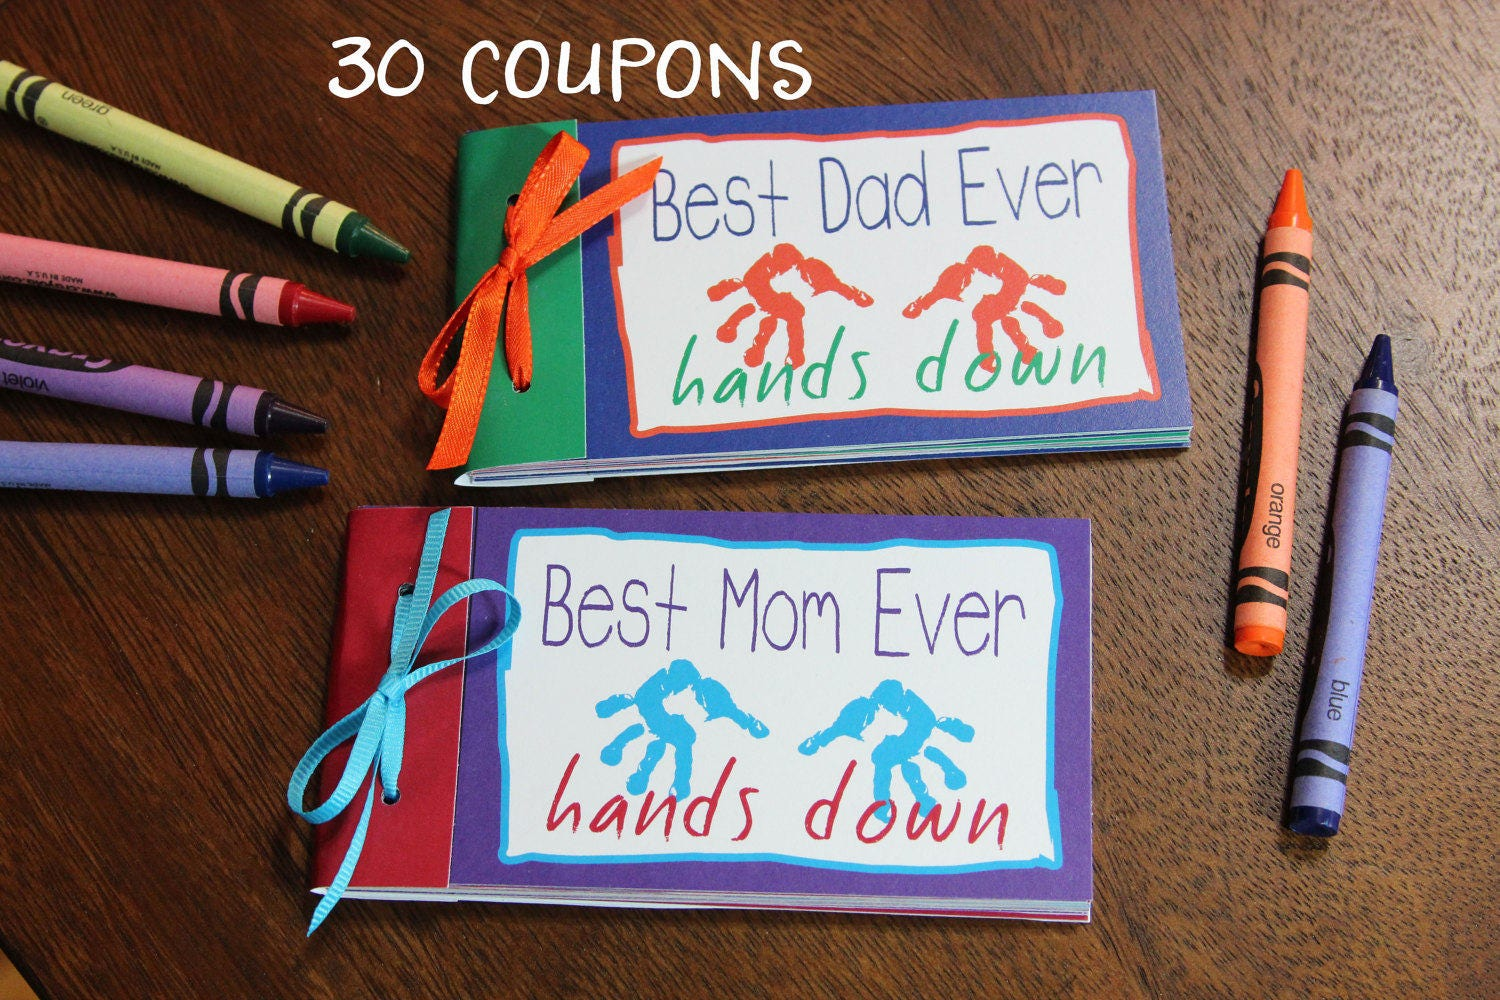 Printable coupons for family movie night, no chores, pizza for dinner and so much more!